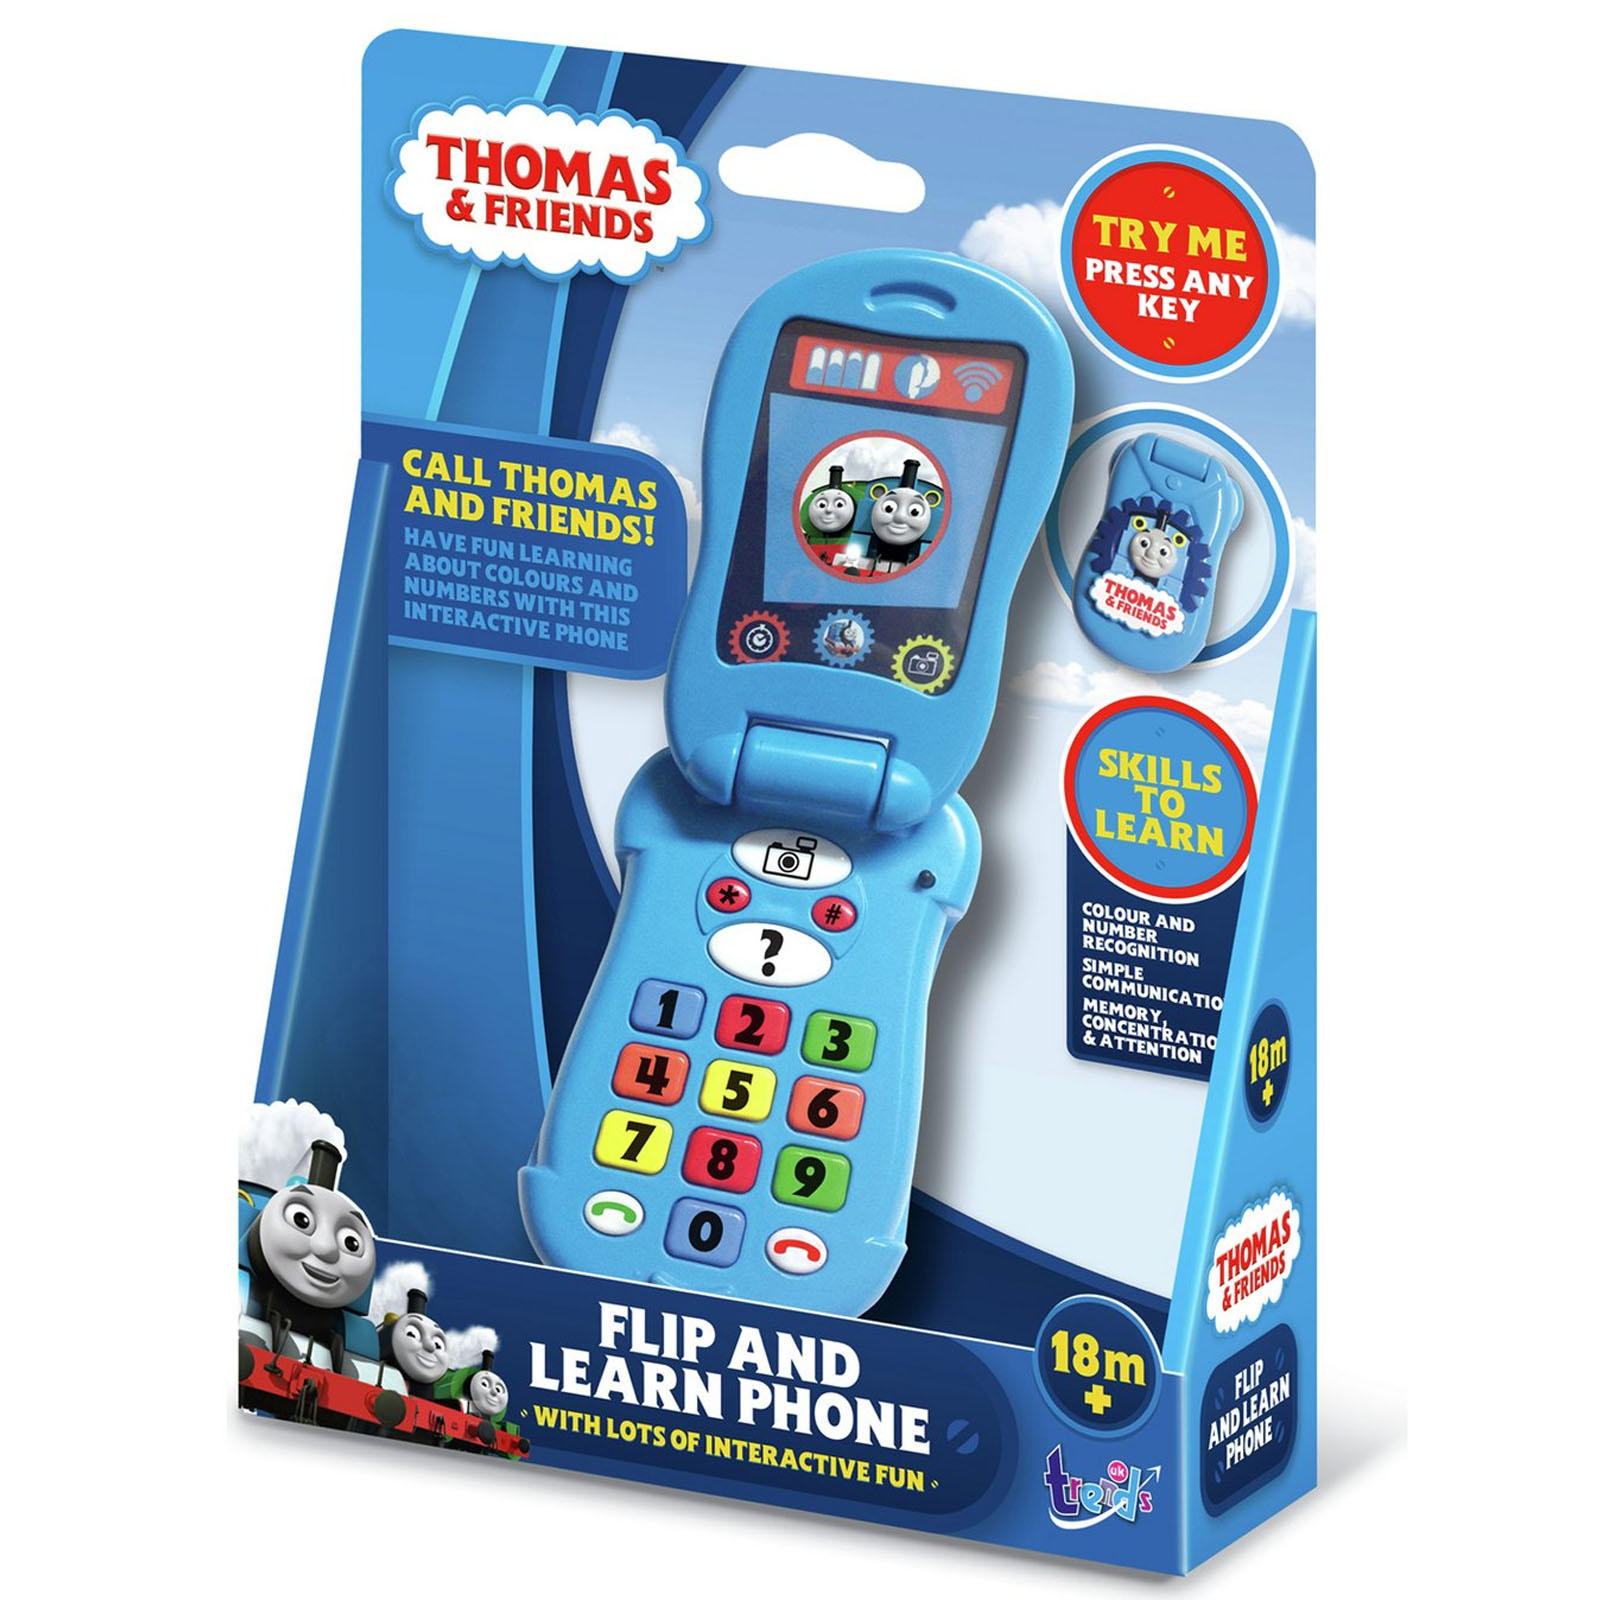 Thomas & Friends Flip & Learn Fun Educational Phone